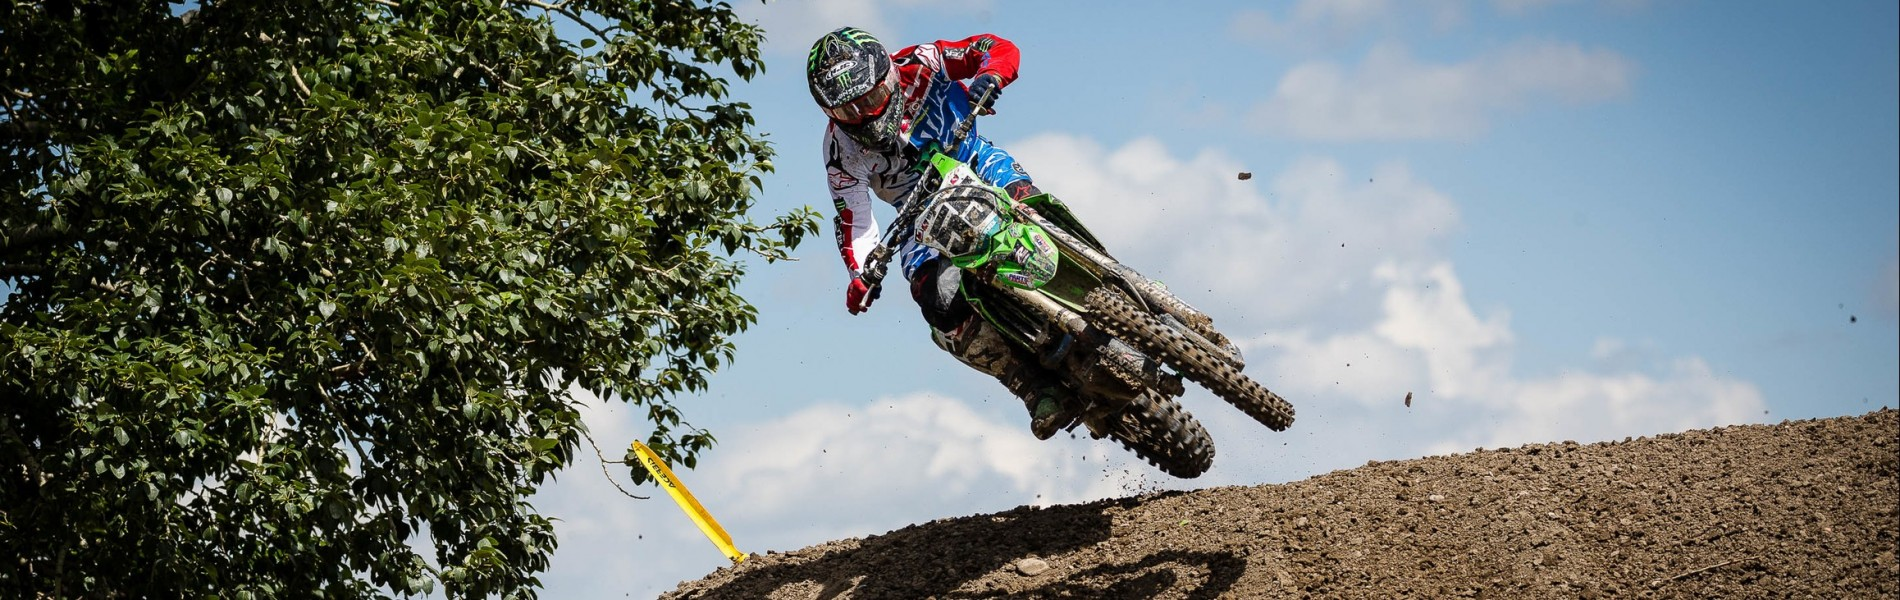 Action and lifestyle shots of Team Monster Energy Alpinestars Kawasaki from Round 3 of the Canadian MX Nationals in Calgary, Alberta.